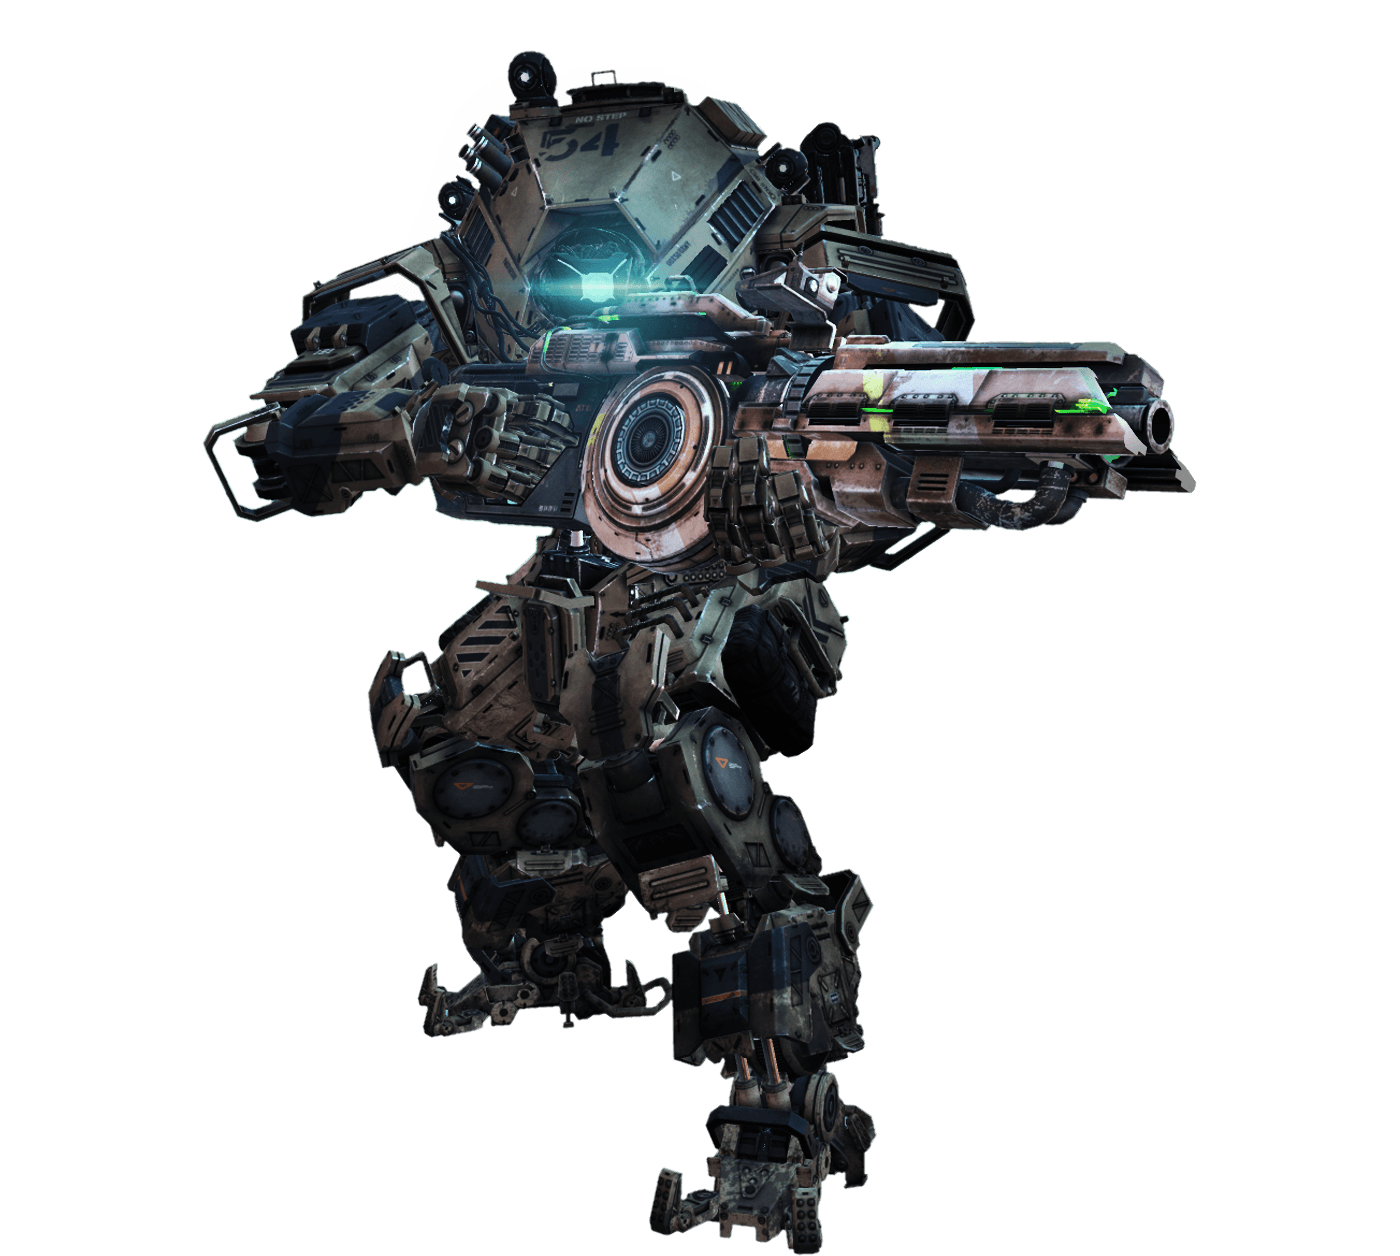 Titanfall 2 pilot png. Images of the new